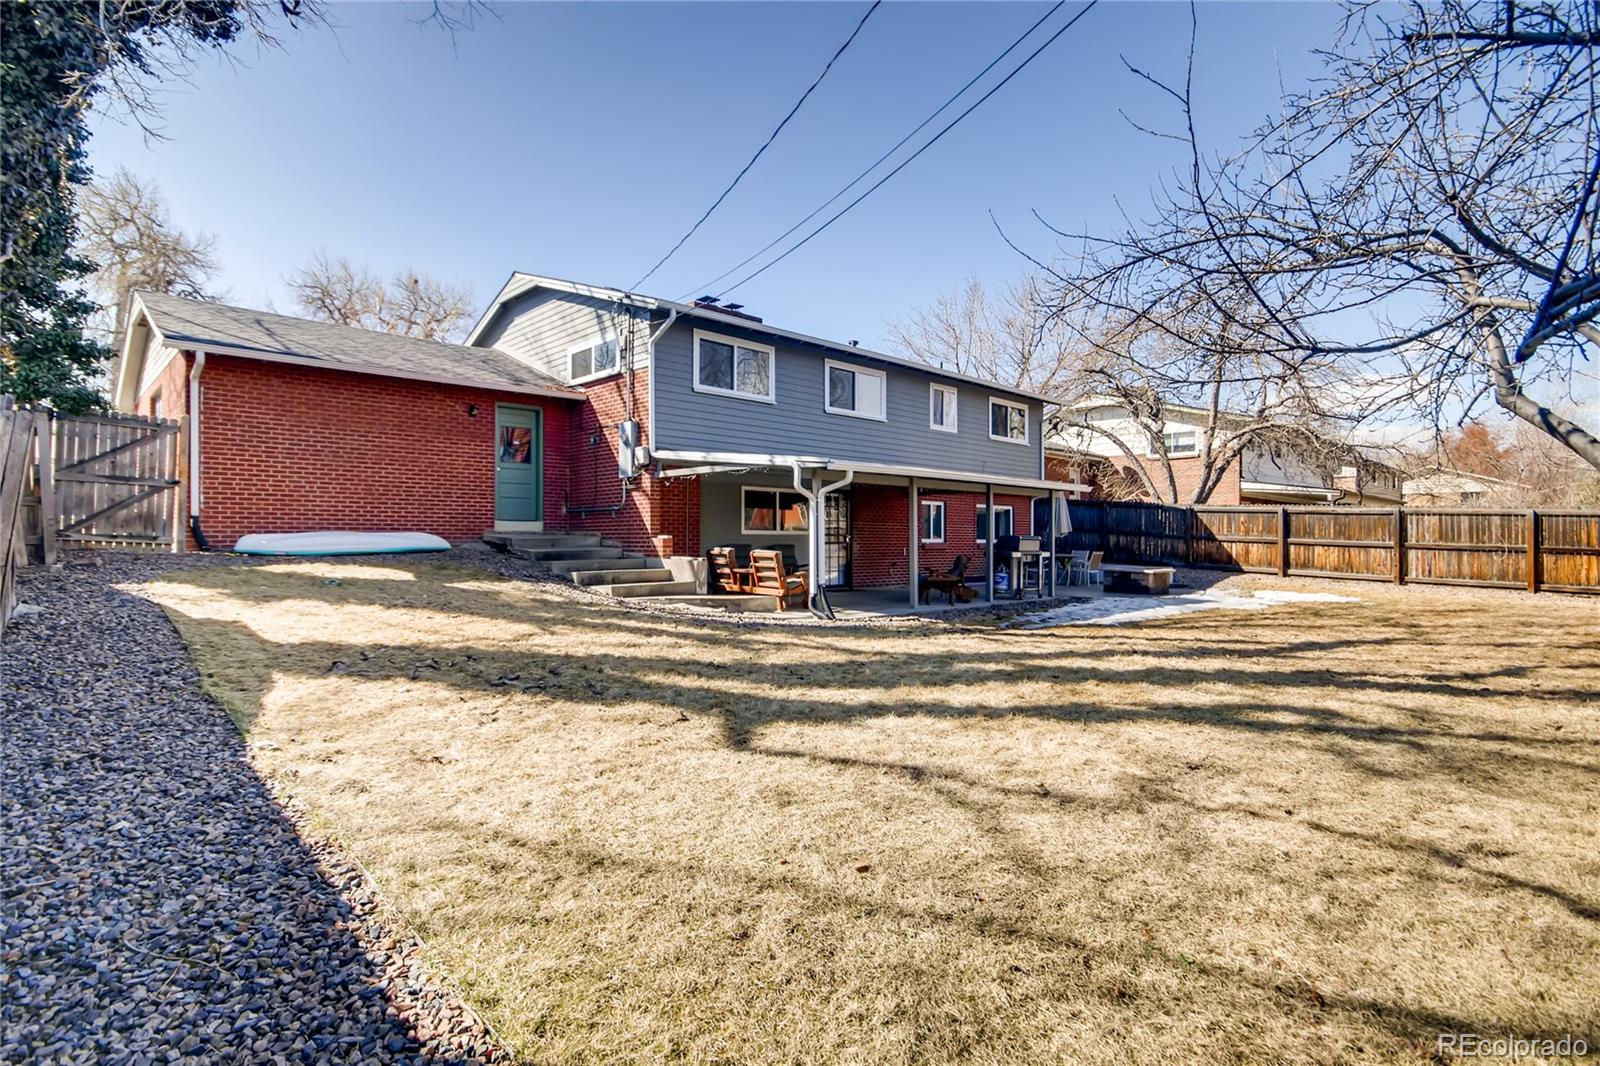 MLS# 9197299 - 26 - 10511 W 22nd Place, Lakewood, CO 80215